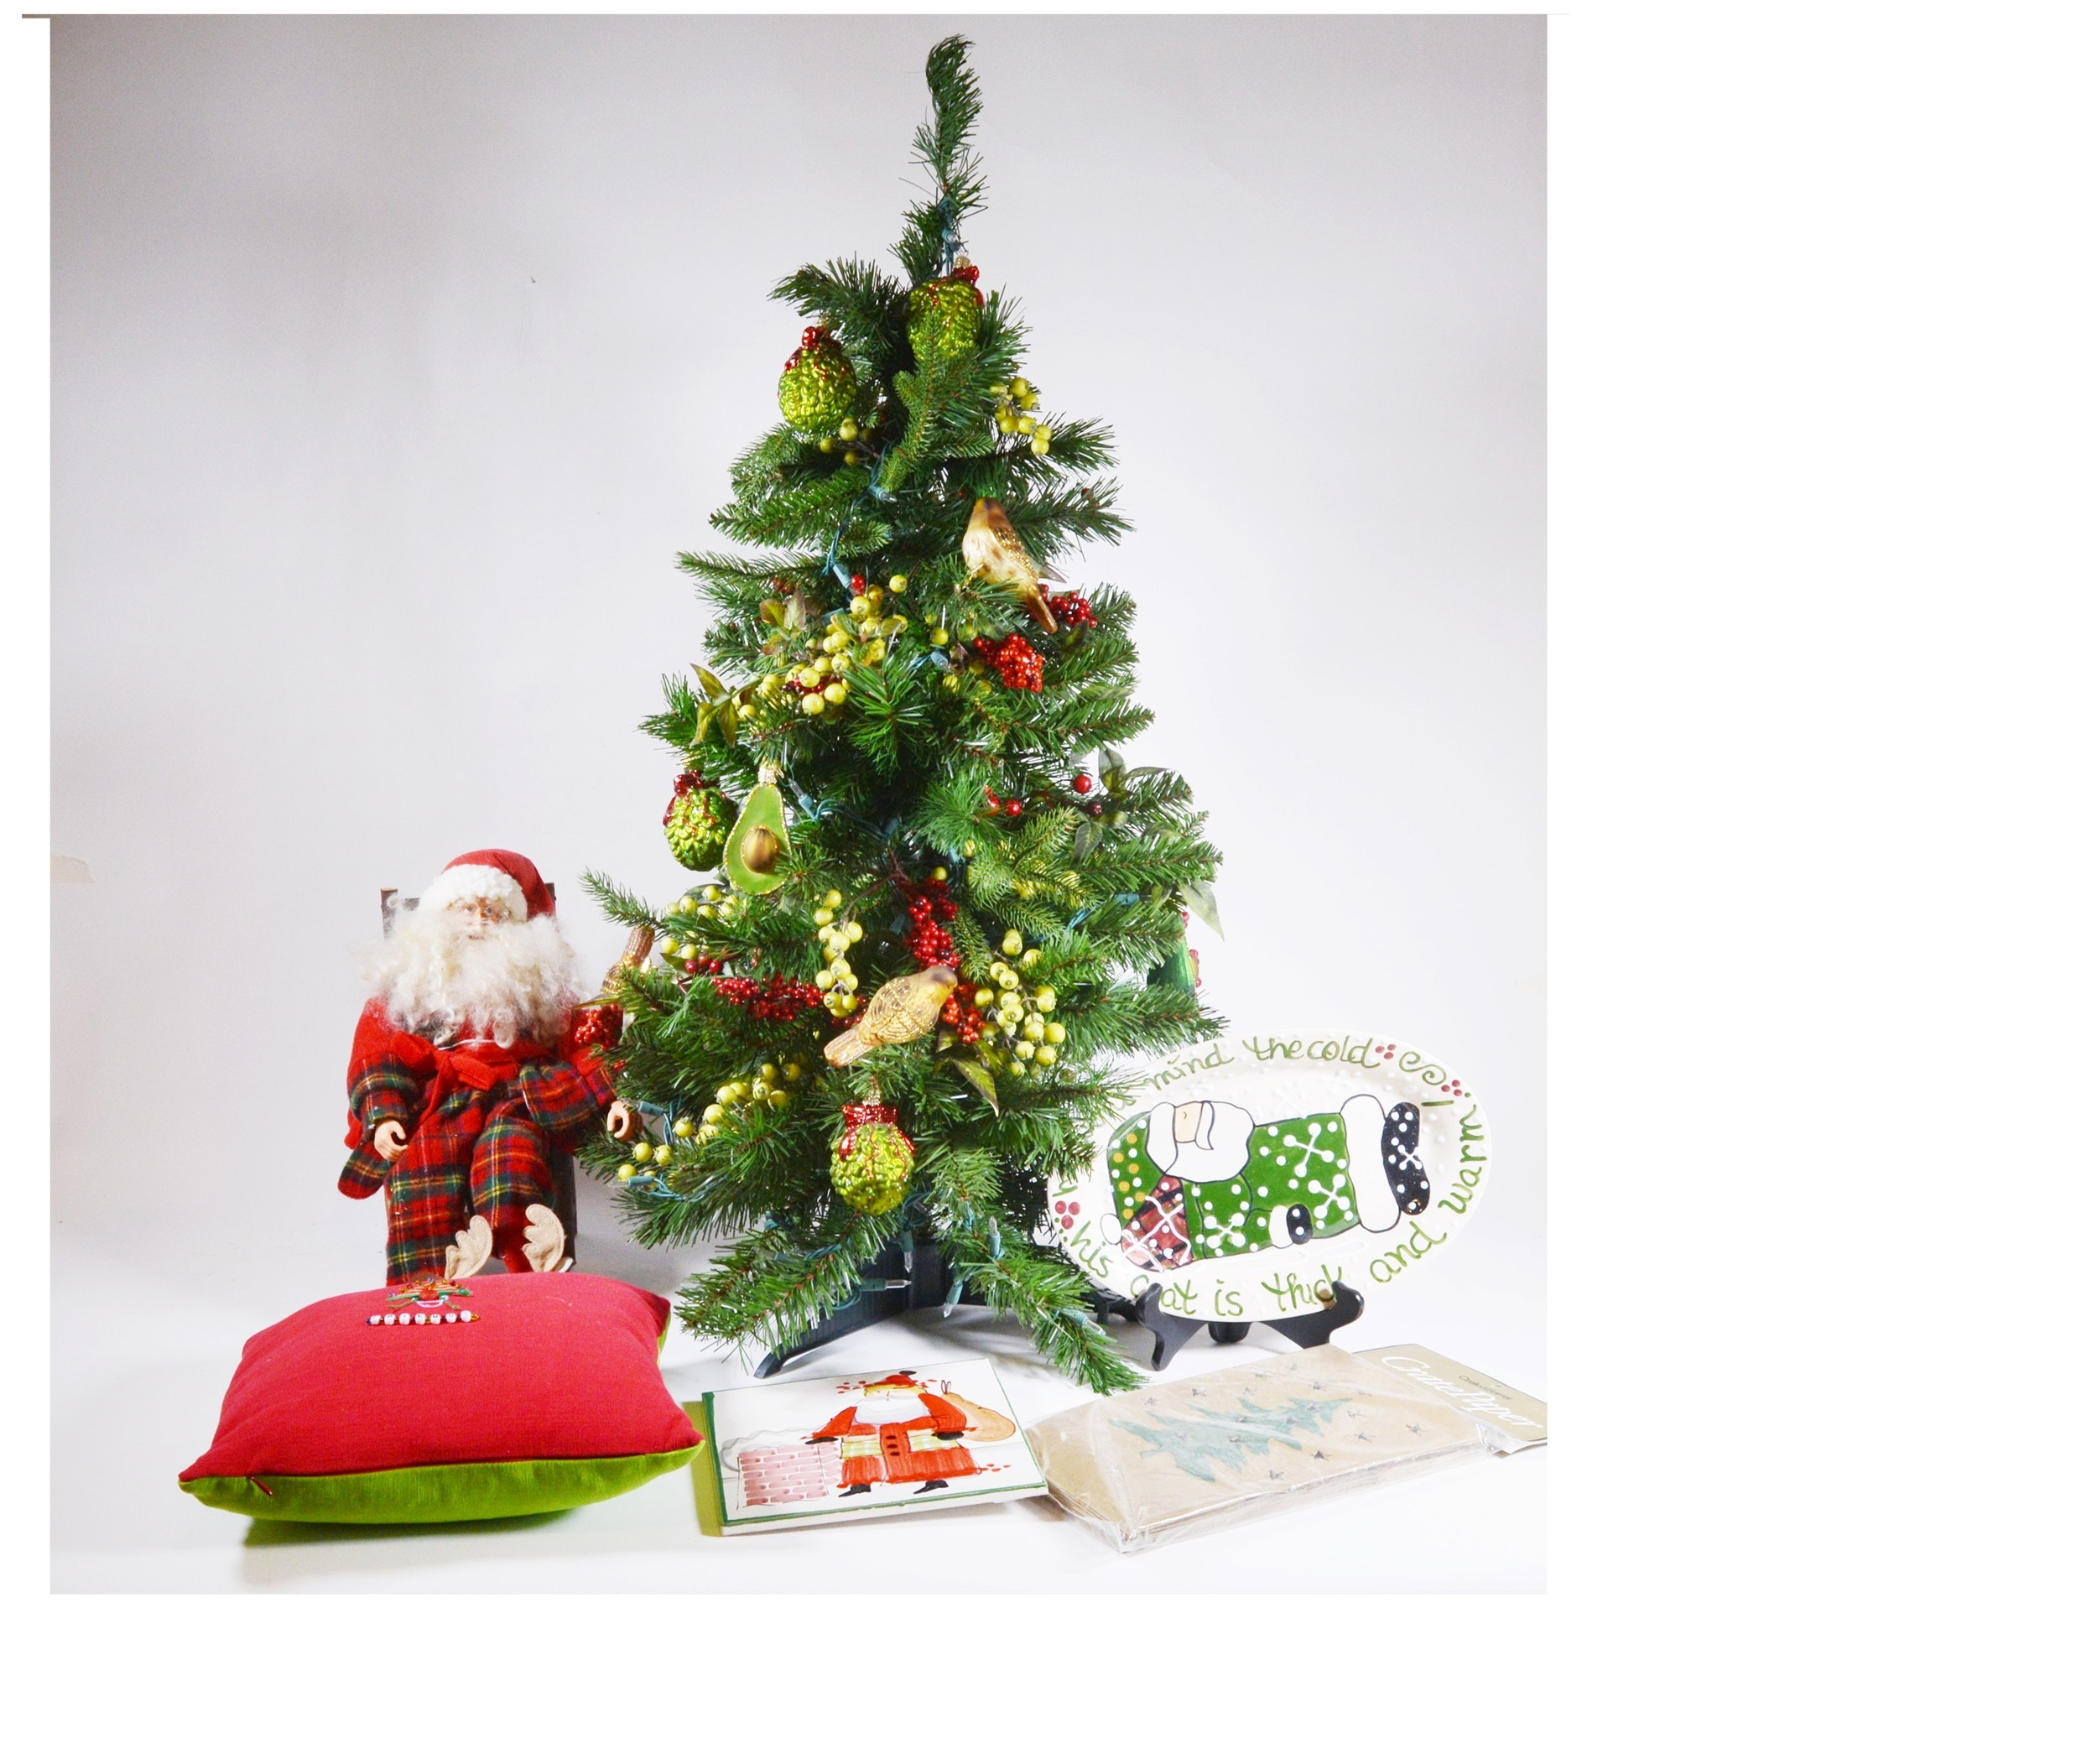 Table Top Christmas Tree With Glass Ornaments and Other Holiday Decor